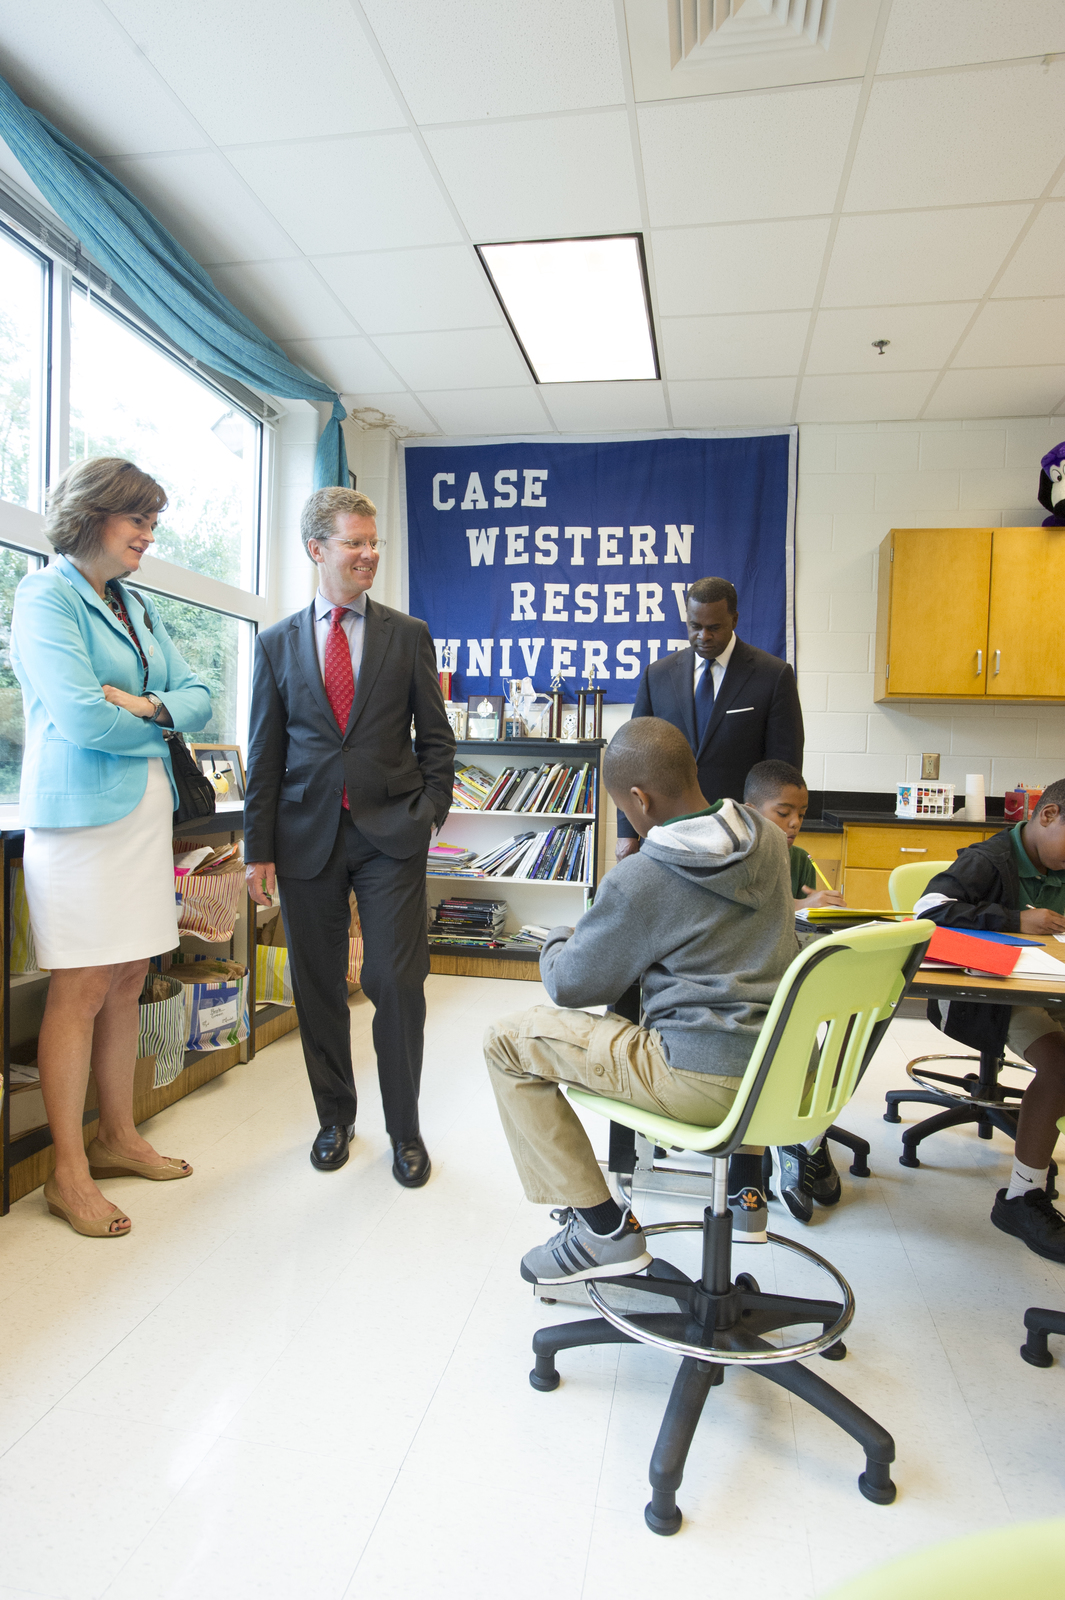 Visit of Secretary Shaun Donovan to Atlanta, Georgia for tour of the [redeveloped] East Lake neighborhood [and the Charles Drew Charter School.  Joining Secretary Donovan on the visit were Atlanta Mayor Kasim Reed;  HUD Region IV (Southeast) Administrator Ed Jennings, Jr.;  Carol Naughton, Lillian Giornelli, and Greg Giornelli of Purpose Built Communities;  and Daniel Shoy of the East Lake Foundation, among others.]